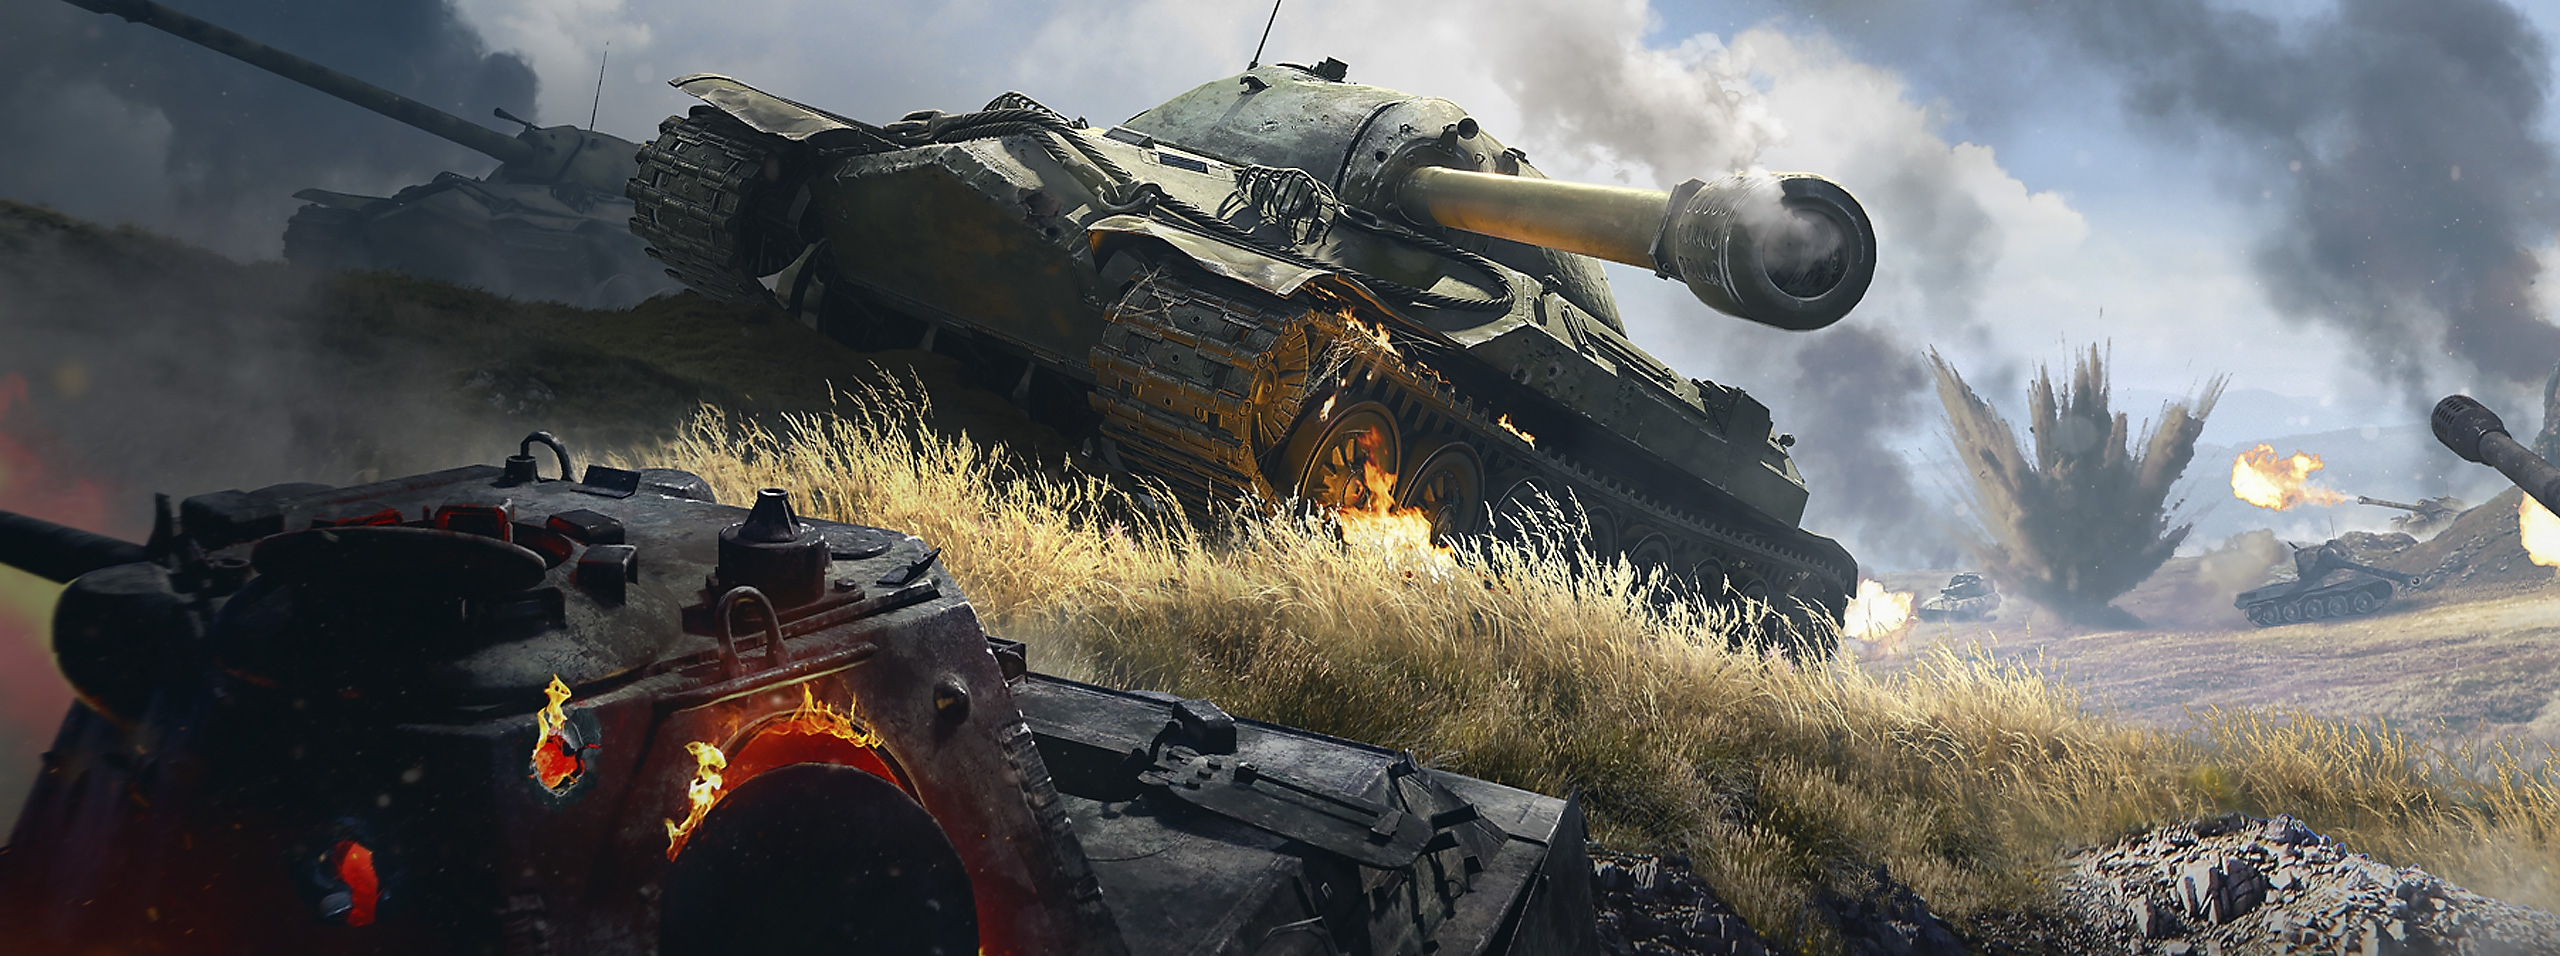 World of Tanks, glavna ilustracija